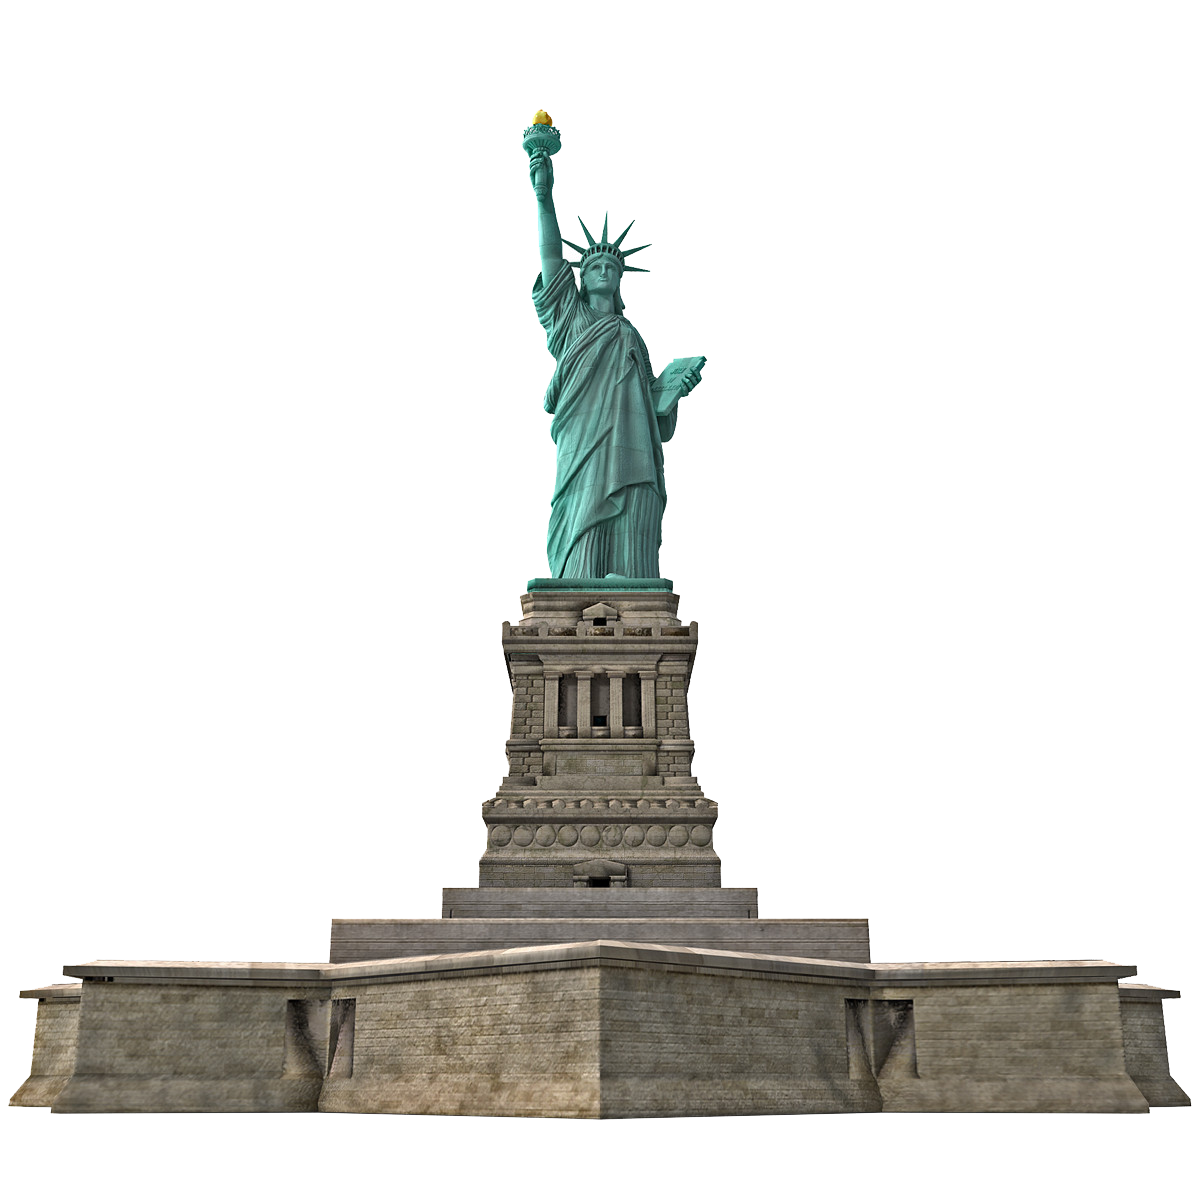 Statue Of Liberty Transparent Background